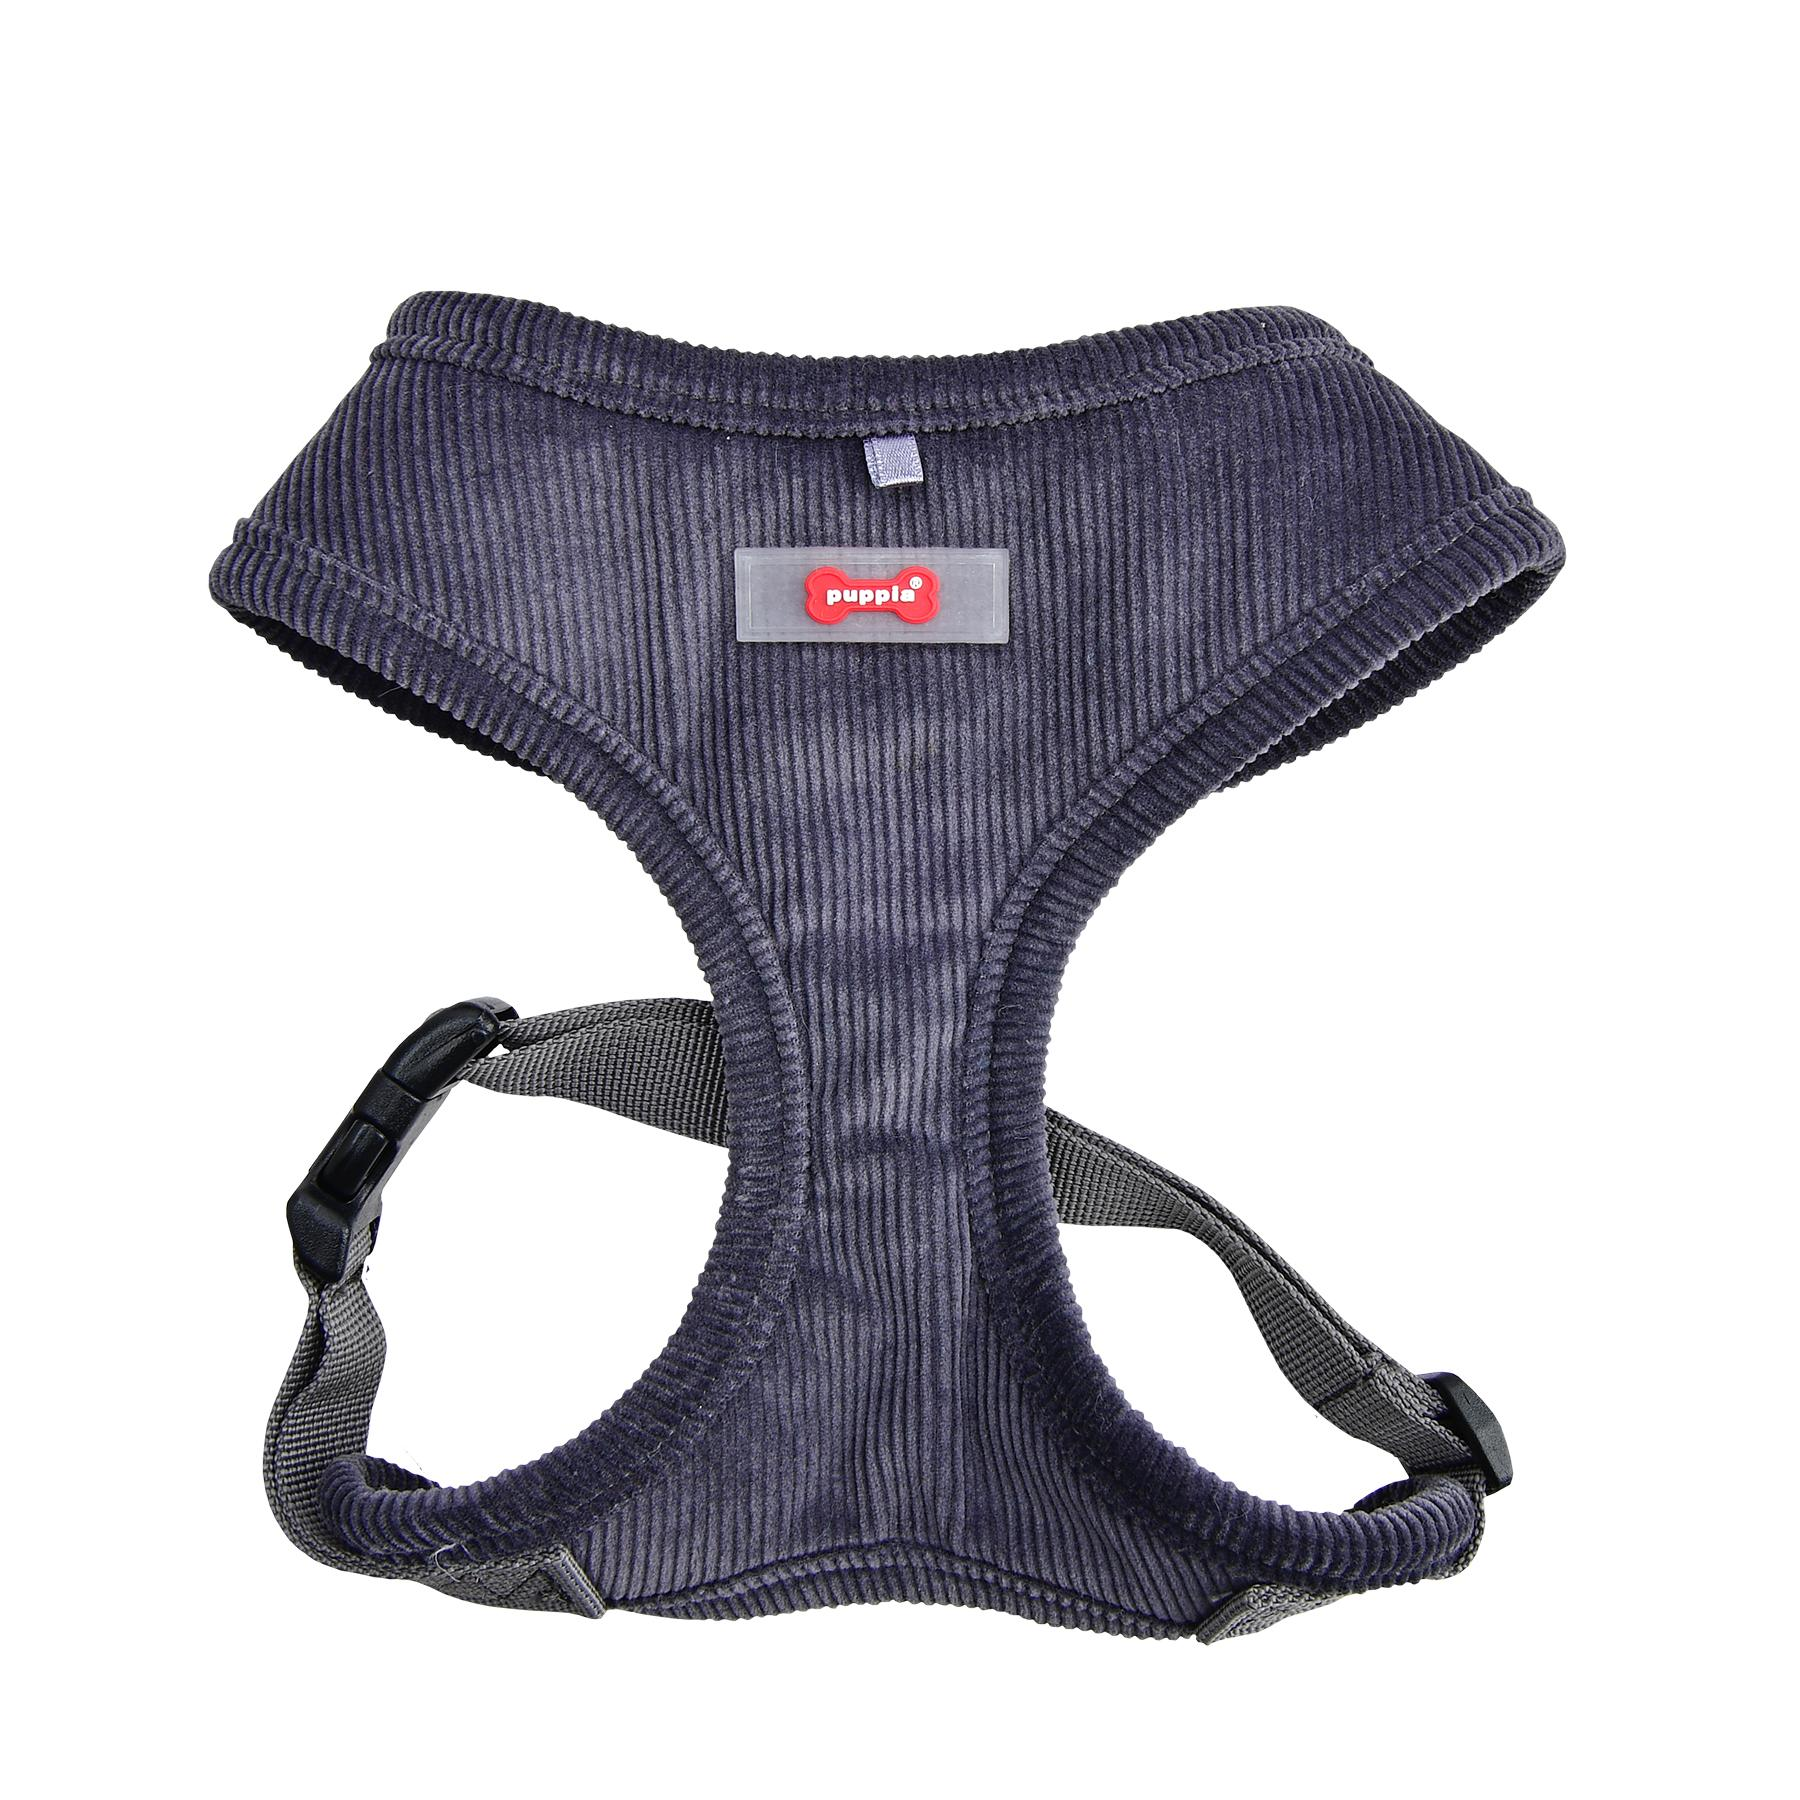 Classy Basic Style Dog Harness By Puppia - Grey